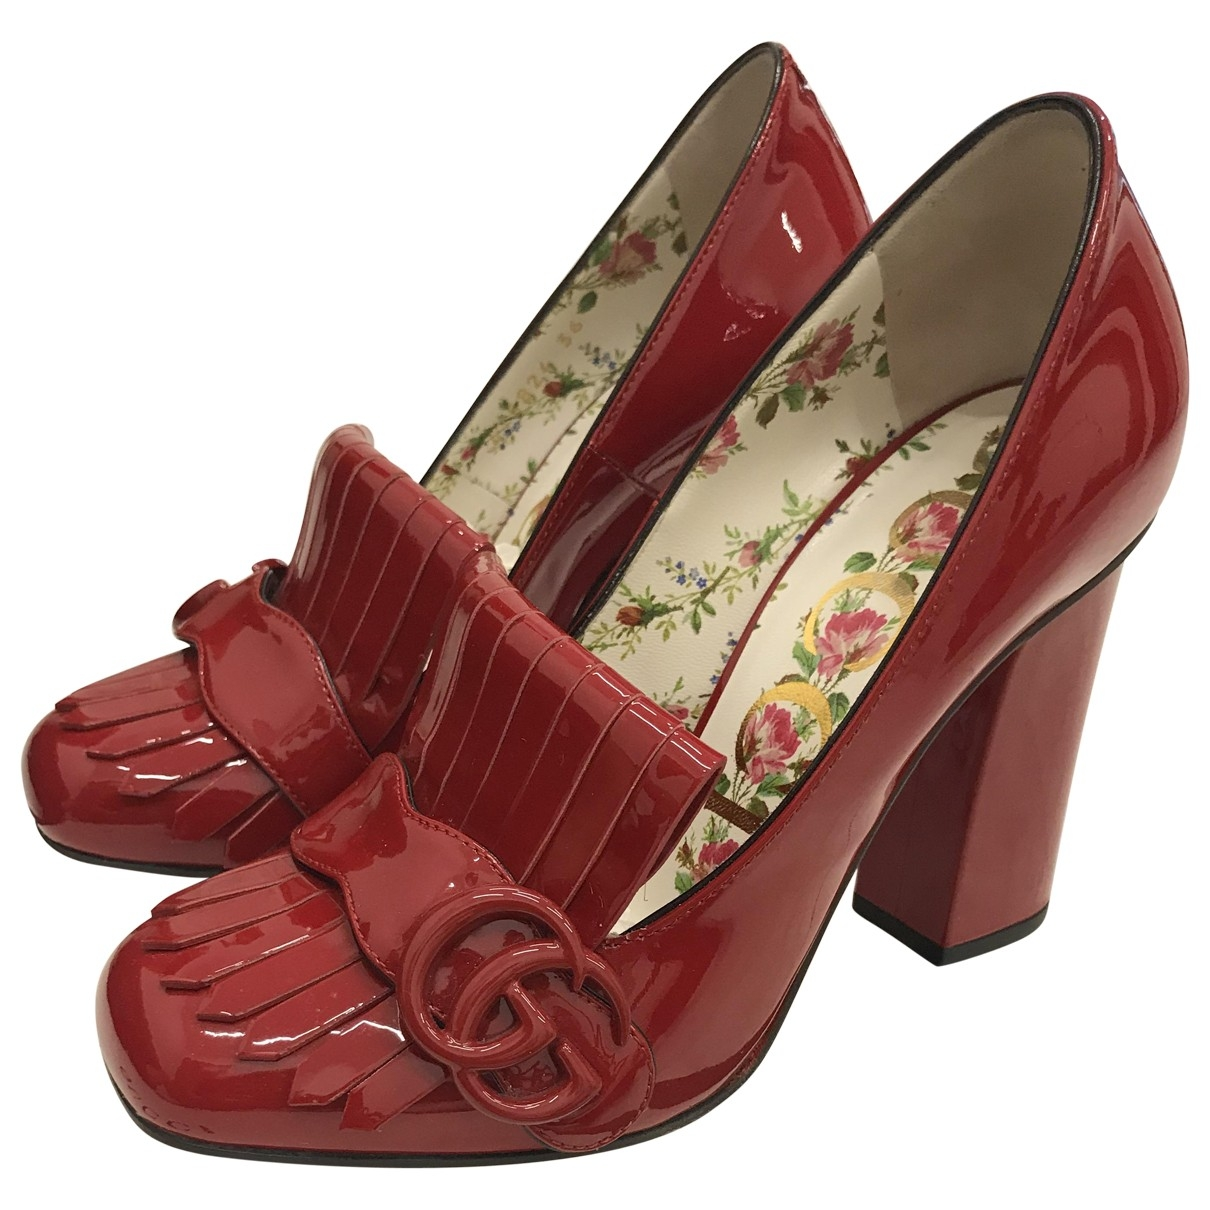 Gucci \N Red Patent leather Heels for Women 36 EU